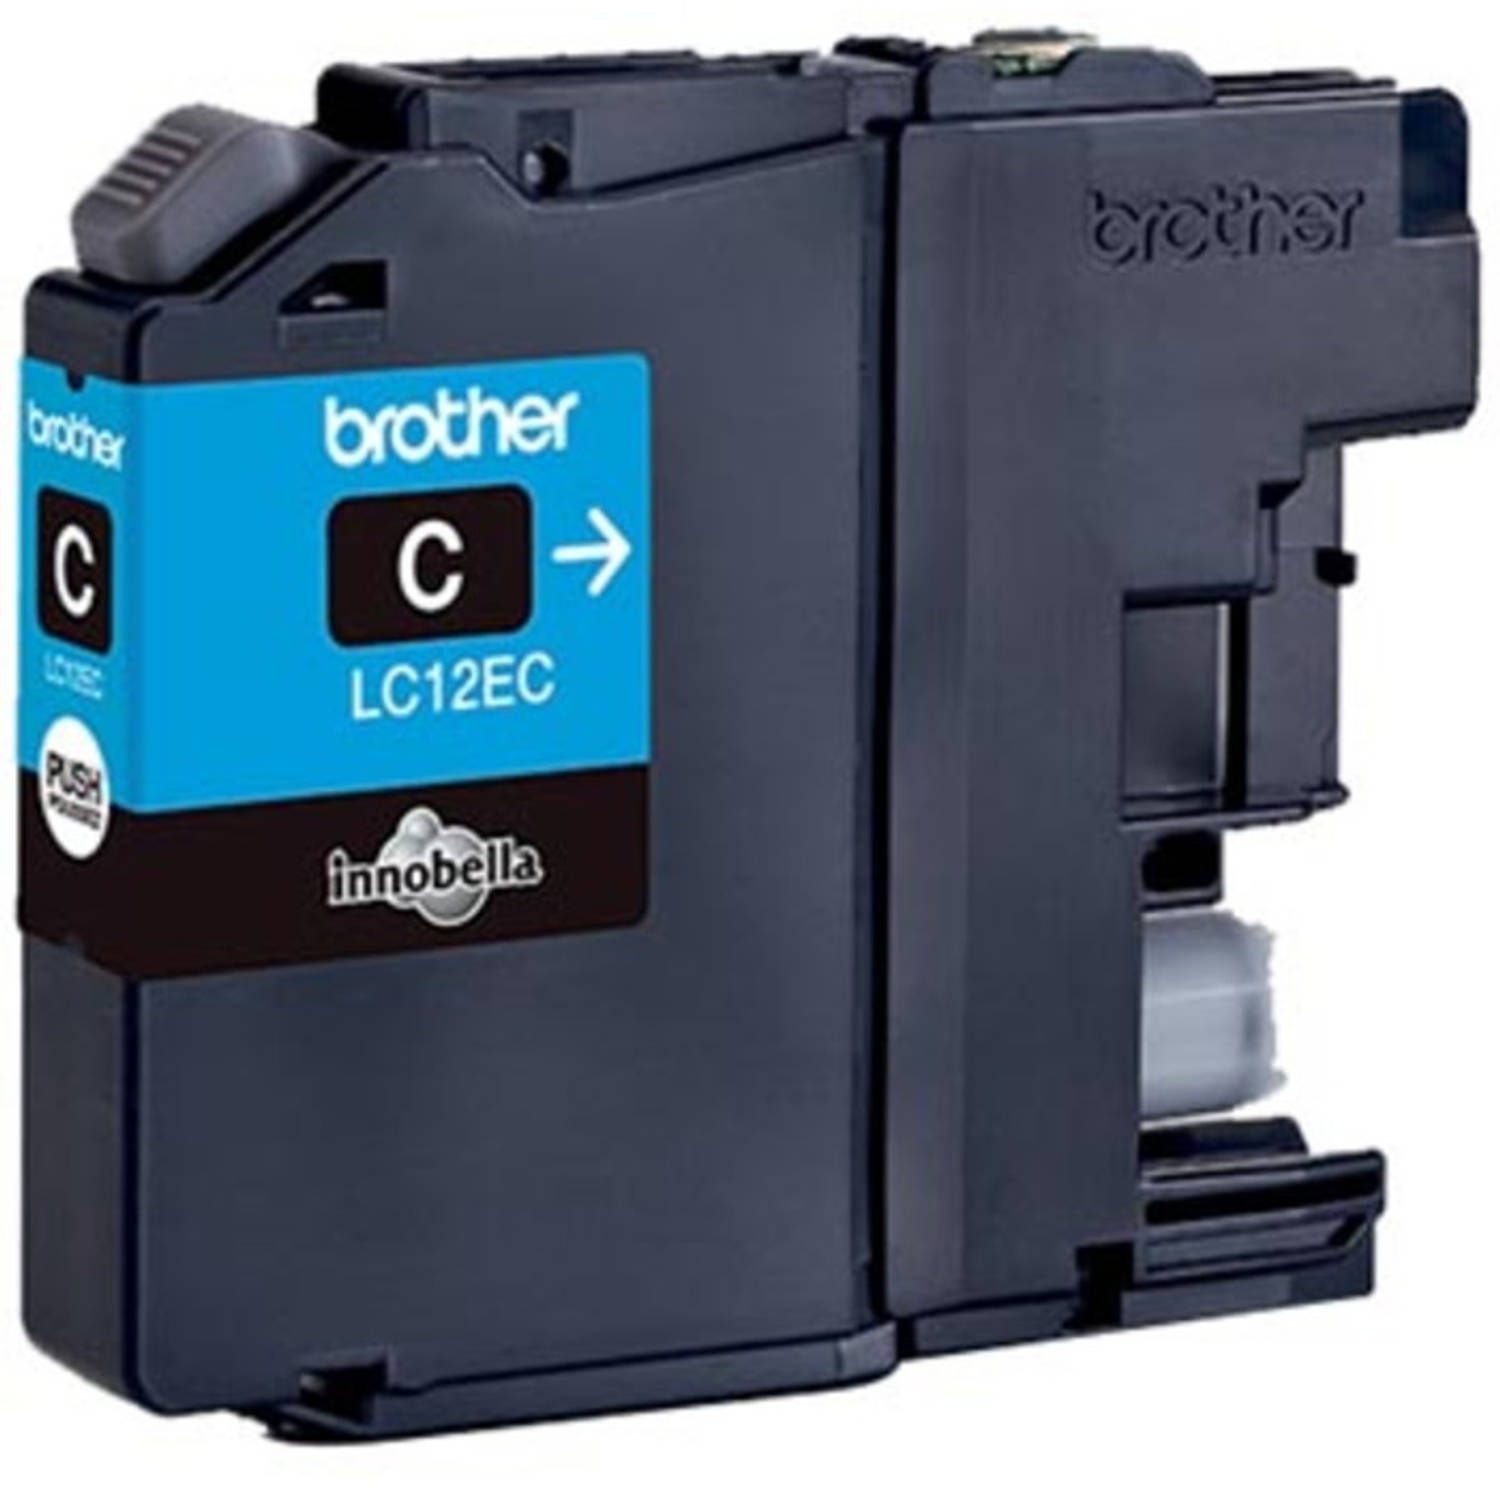 Brother inktcartridge cyaan, 1.200 pagina's - OEM: LC-12EC